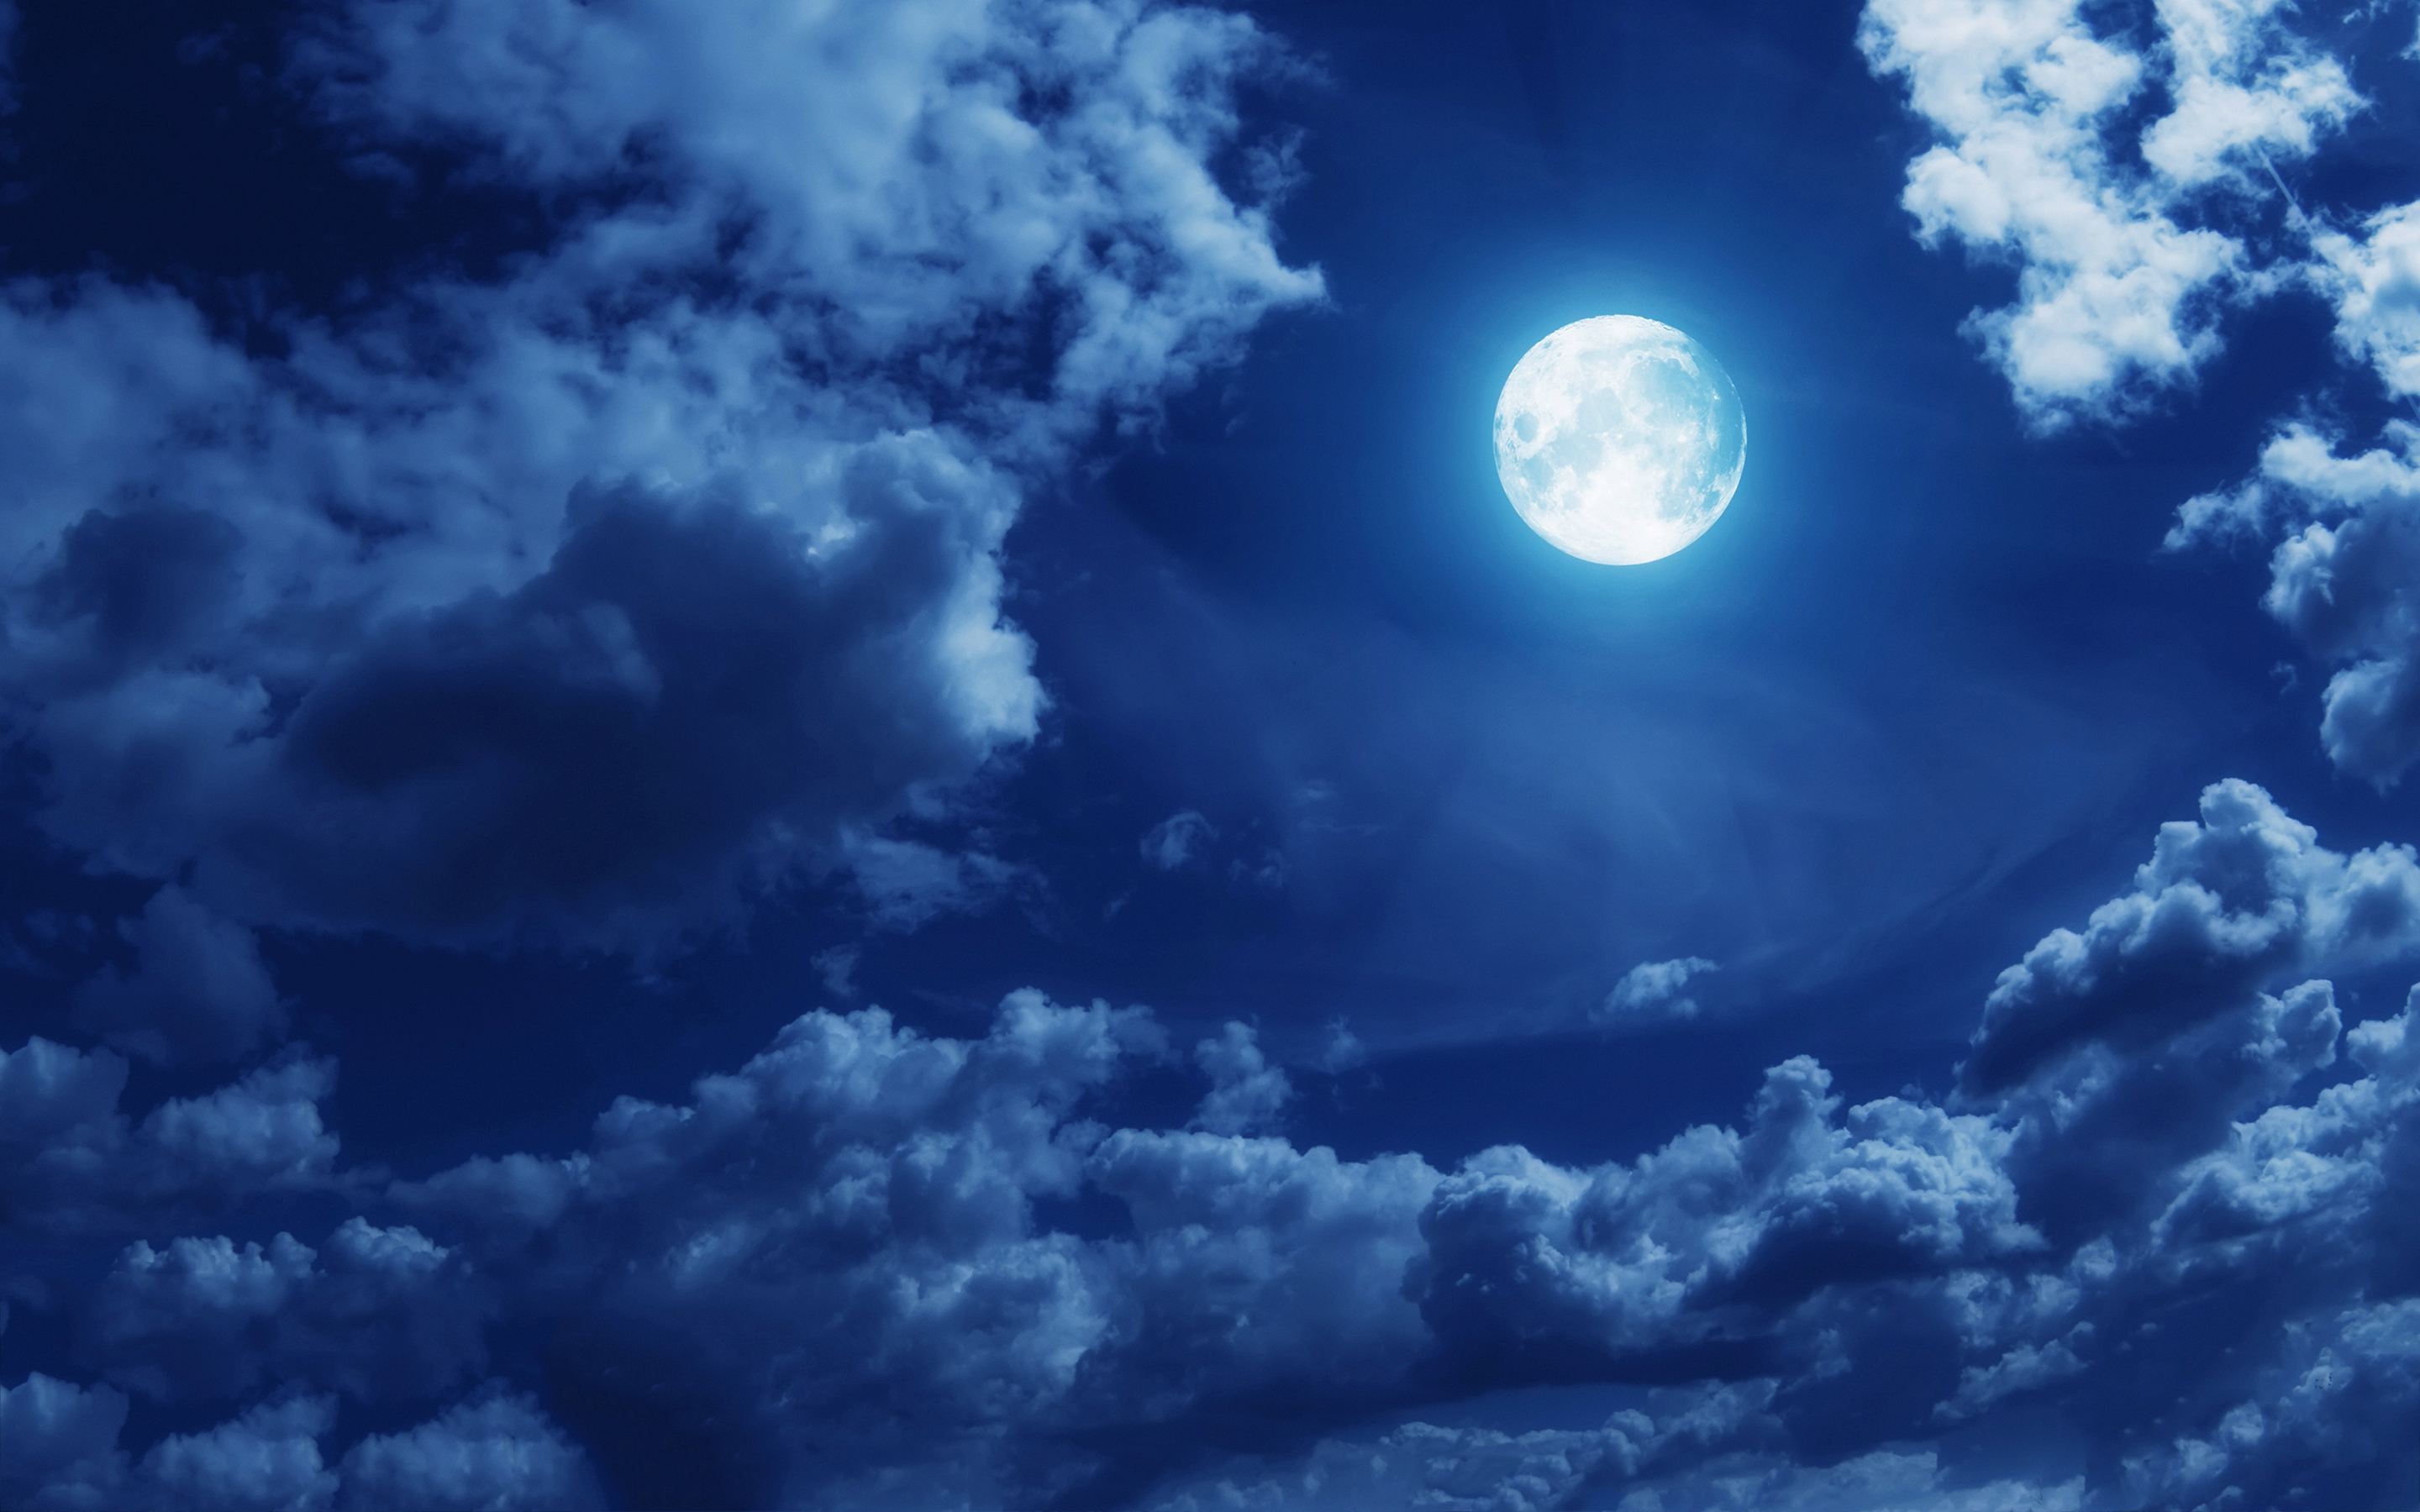 Download - Full Moon Anime Background , HD Wallpaper & Backgrounds